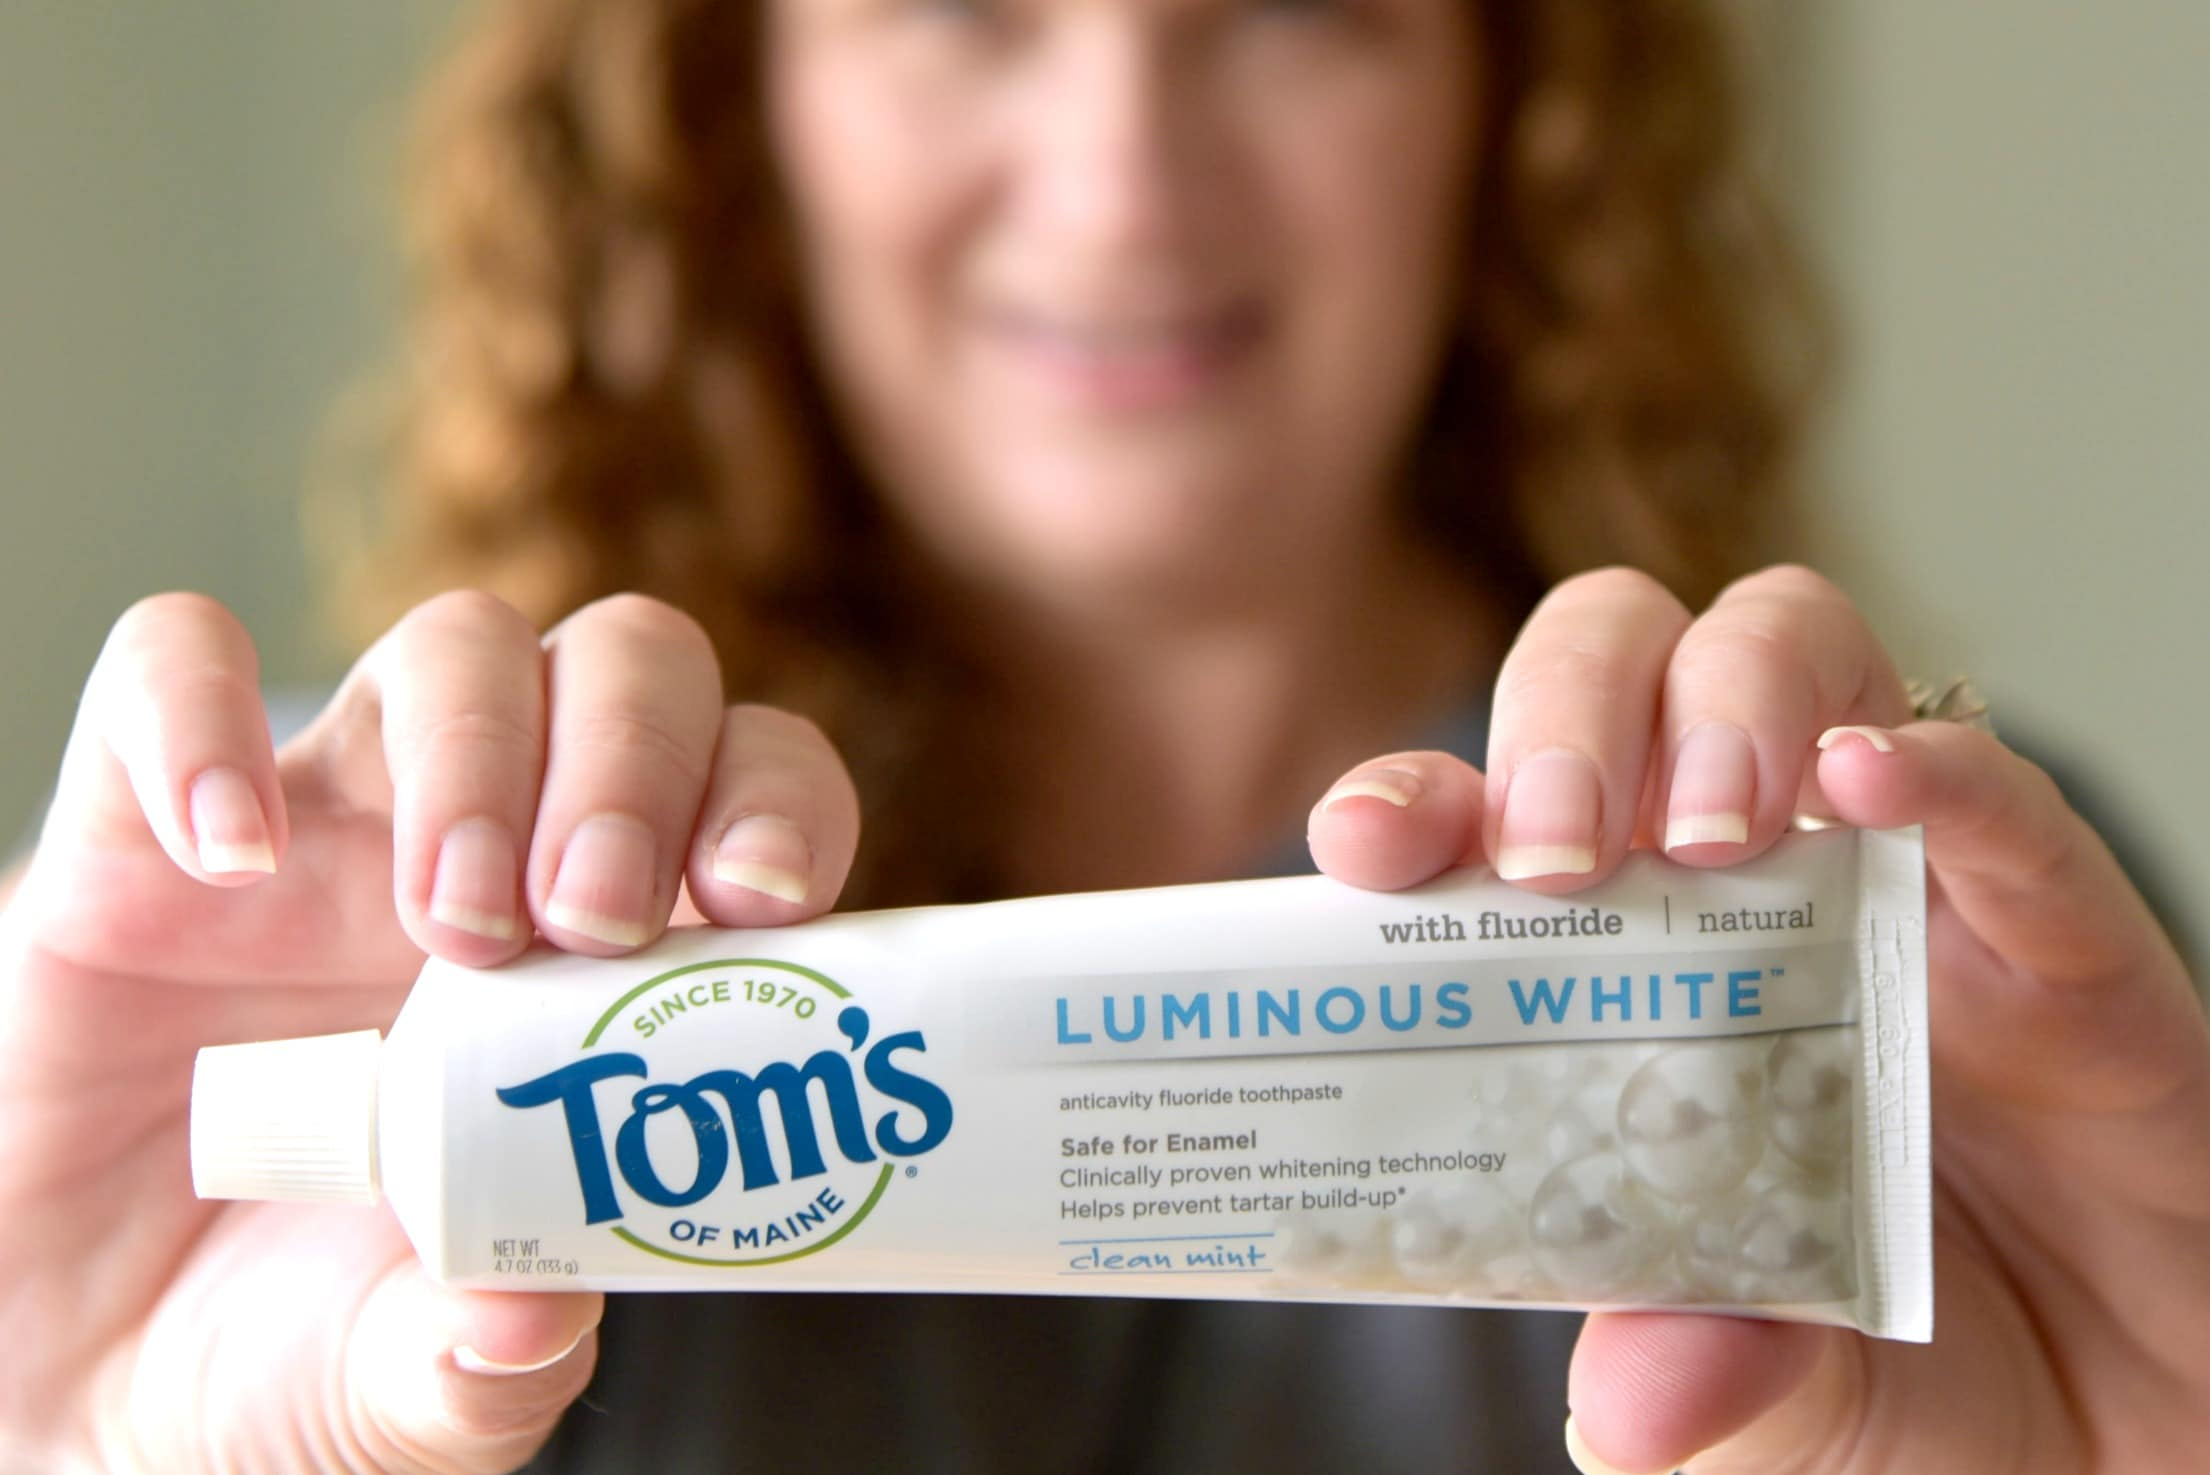 Tom's Luminous White